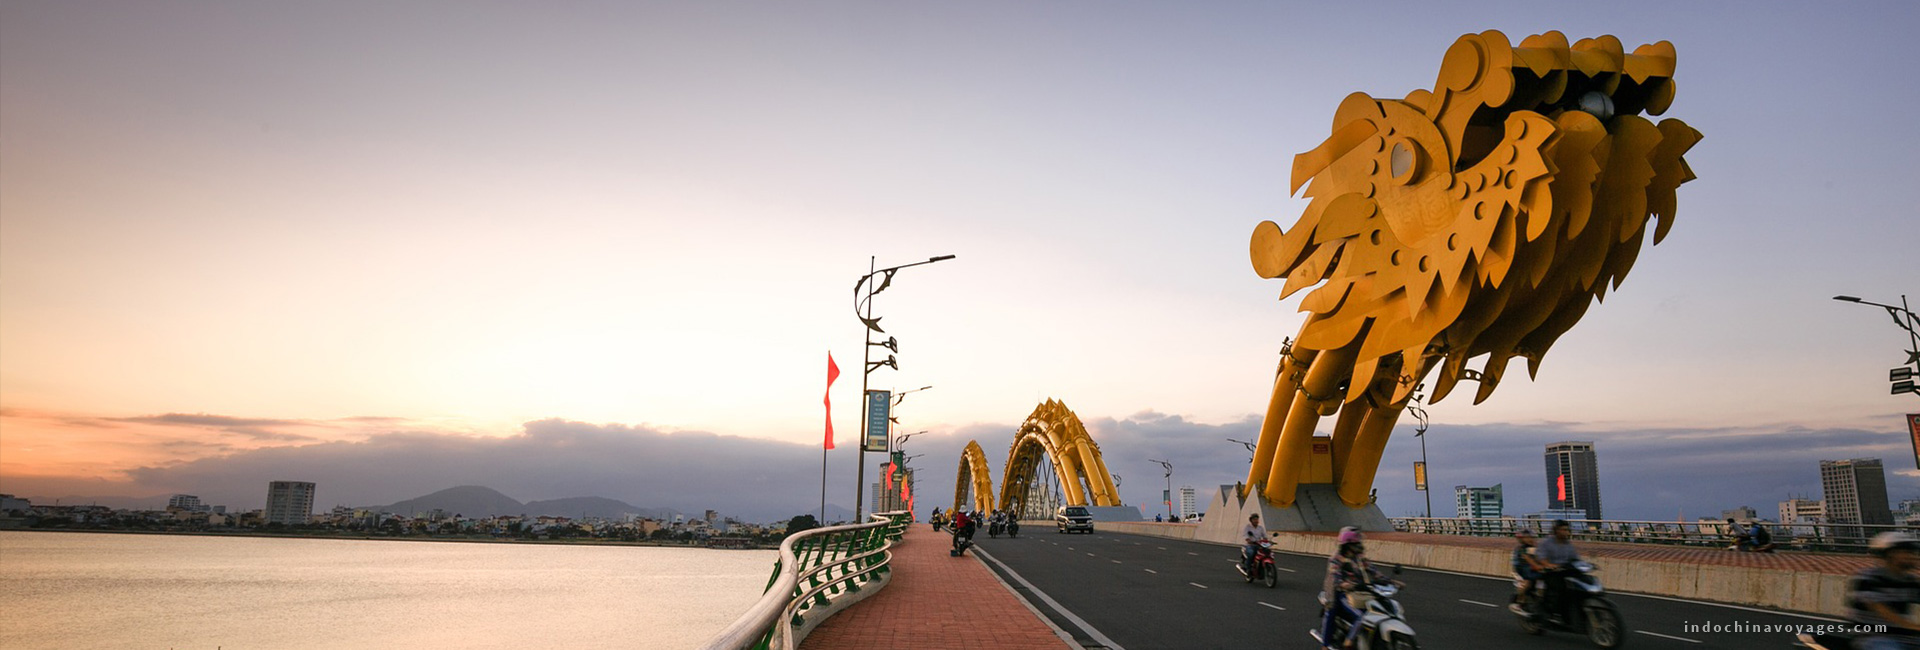 Top 8 things to do in Da Nang